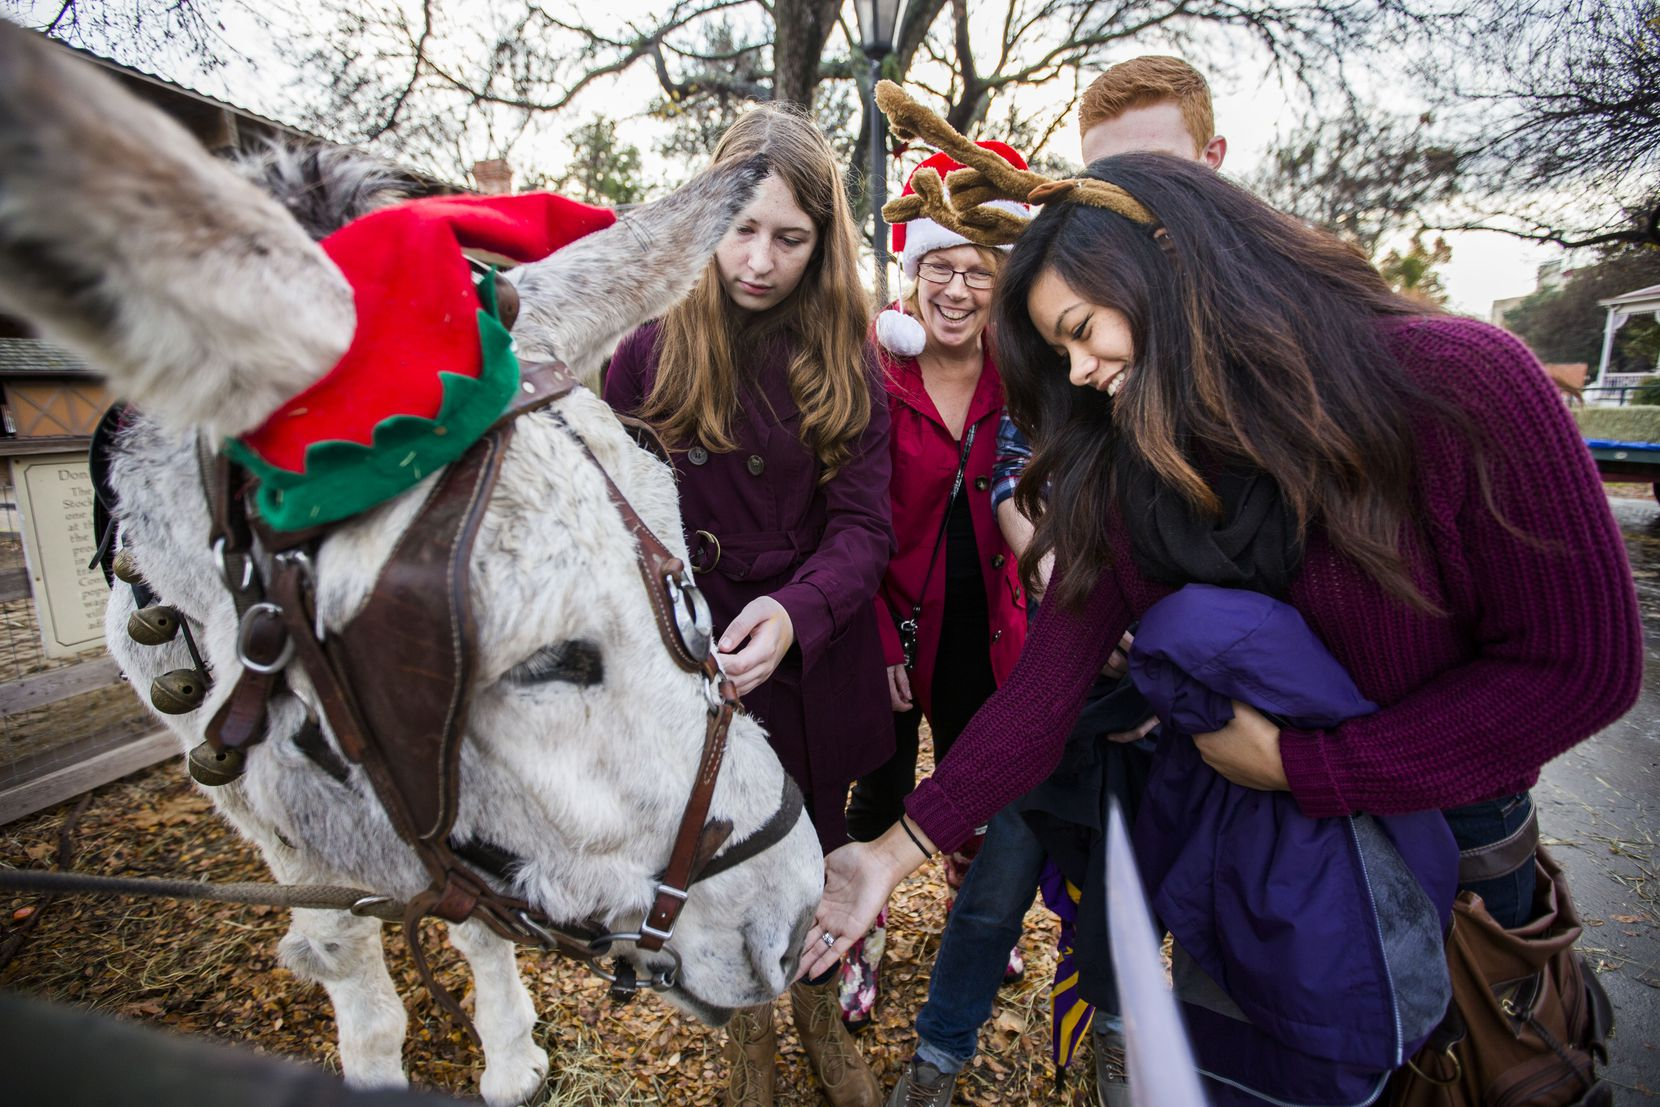 Festive donkeys and performers in period costumes are some of the highlights of Dallas Heritage Village's annual Candlelight event.